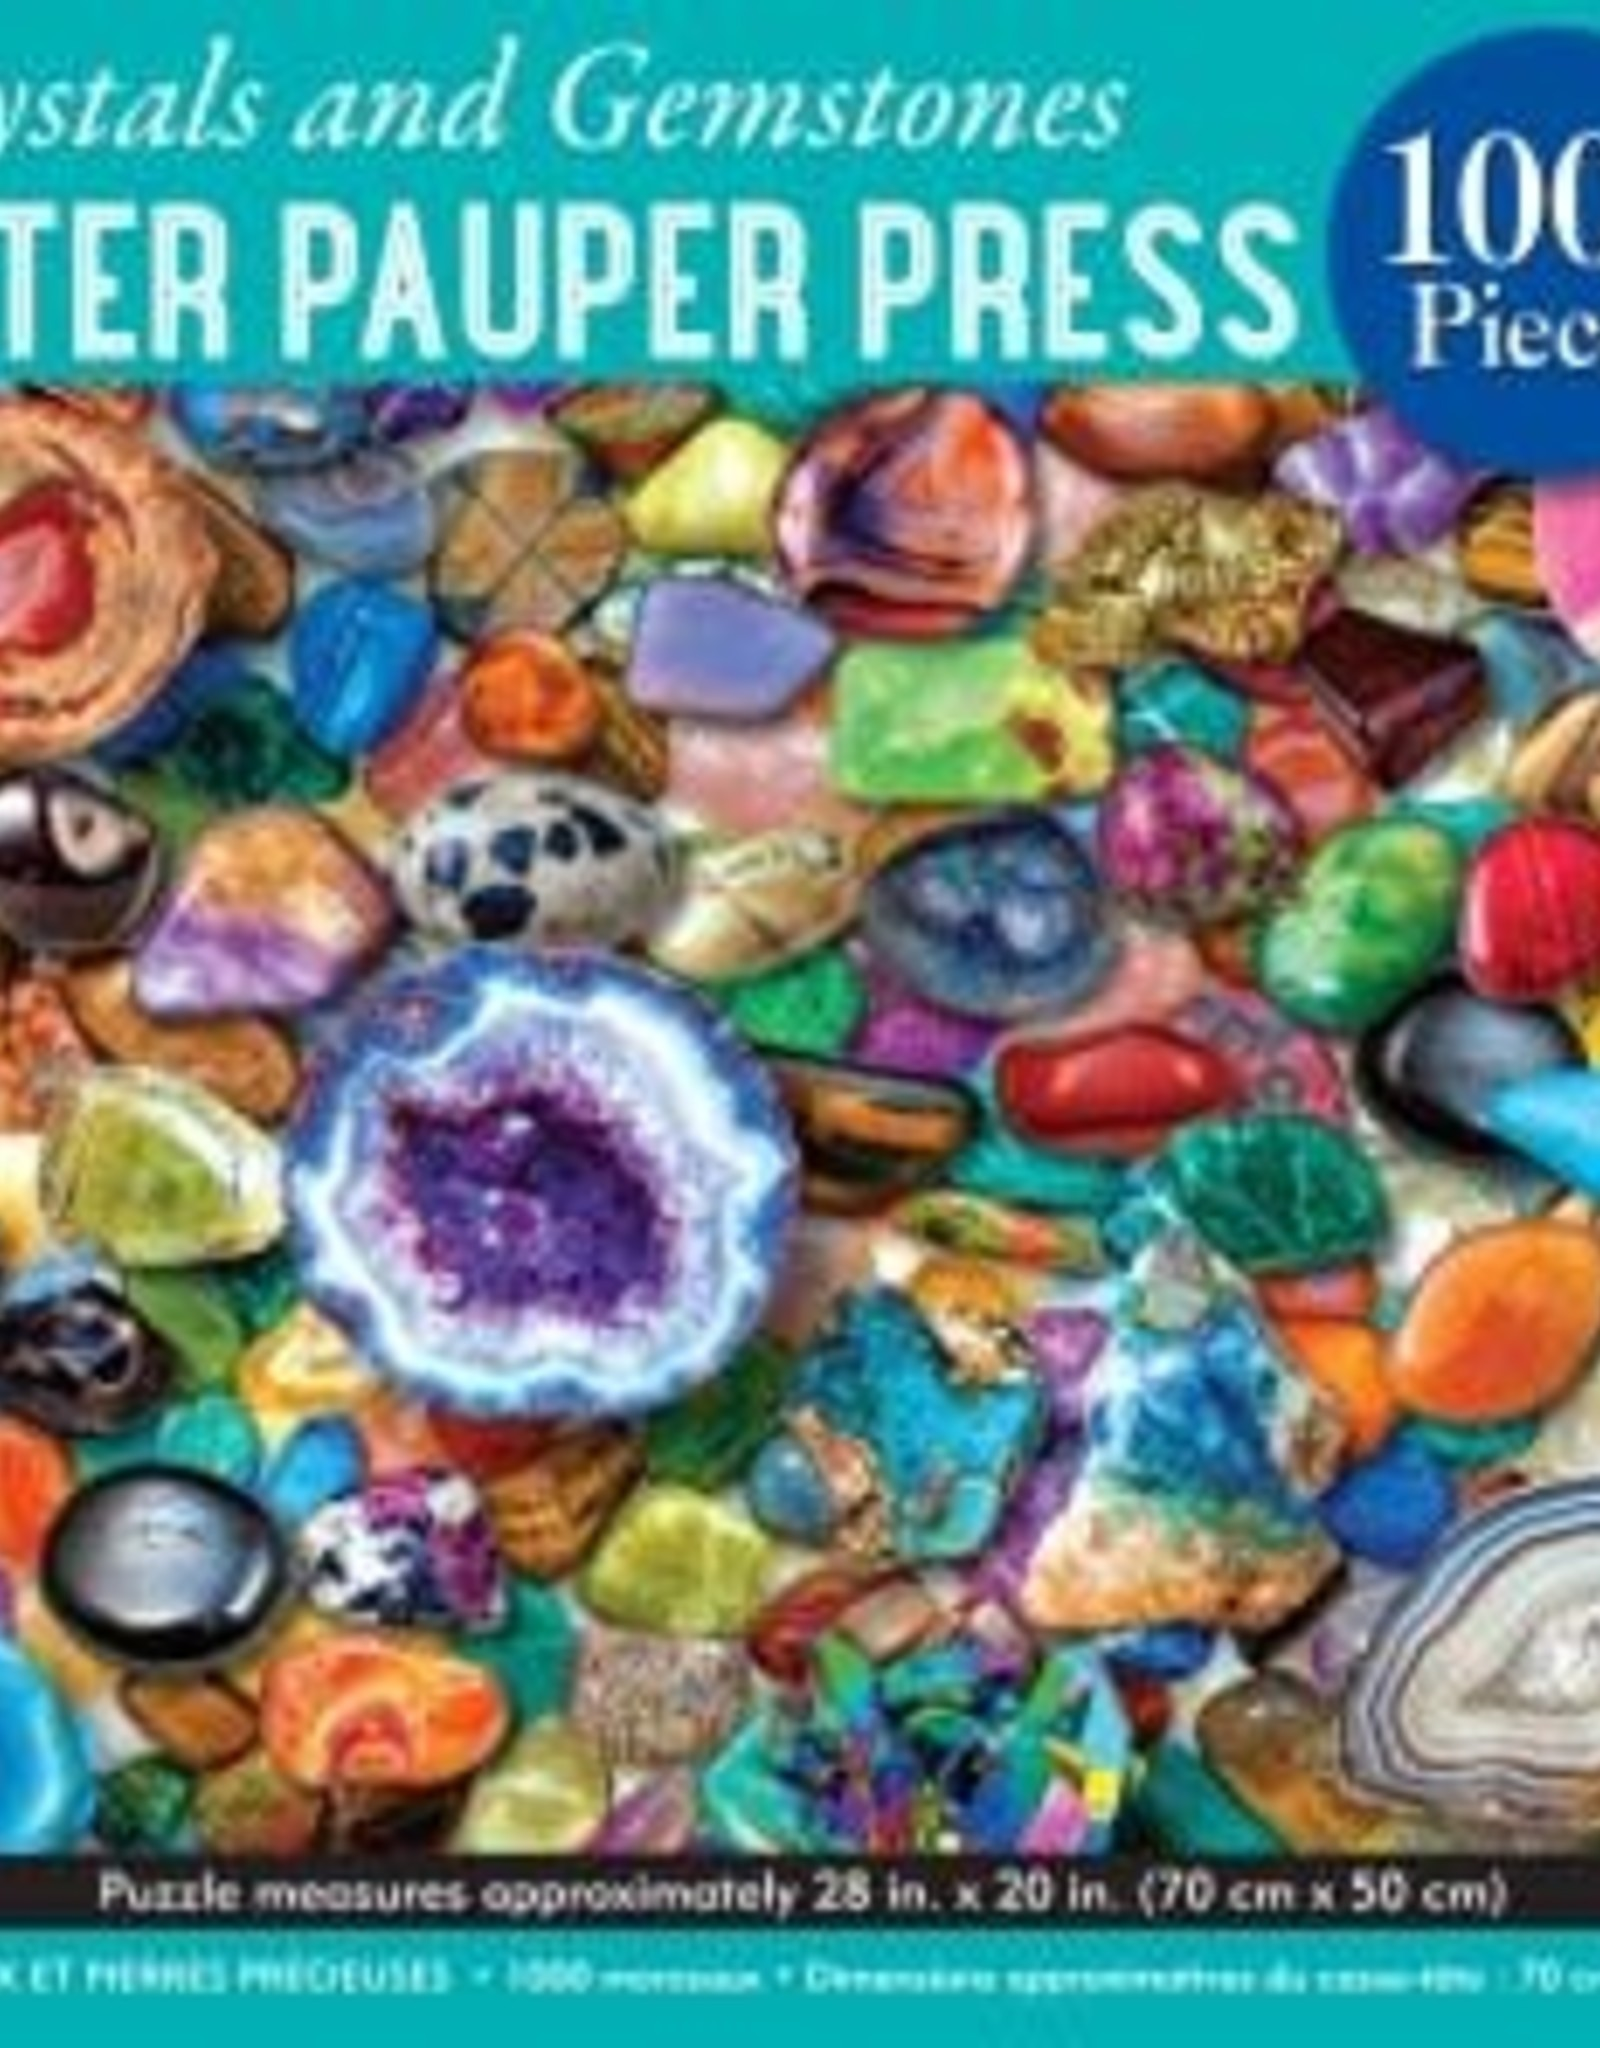 Peter Pauper Press CRYSTALS AND GEMSTONES 1000 PIECE JIGSAW PUZZLE